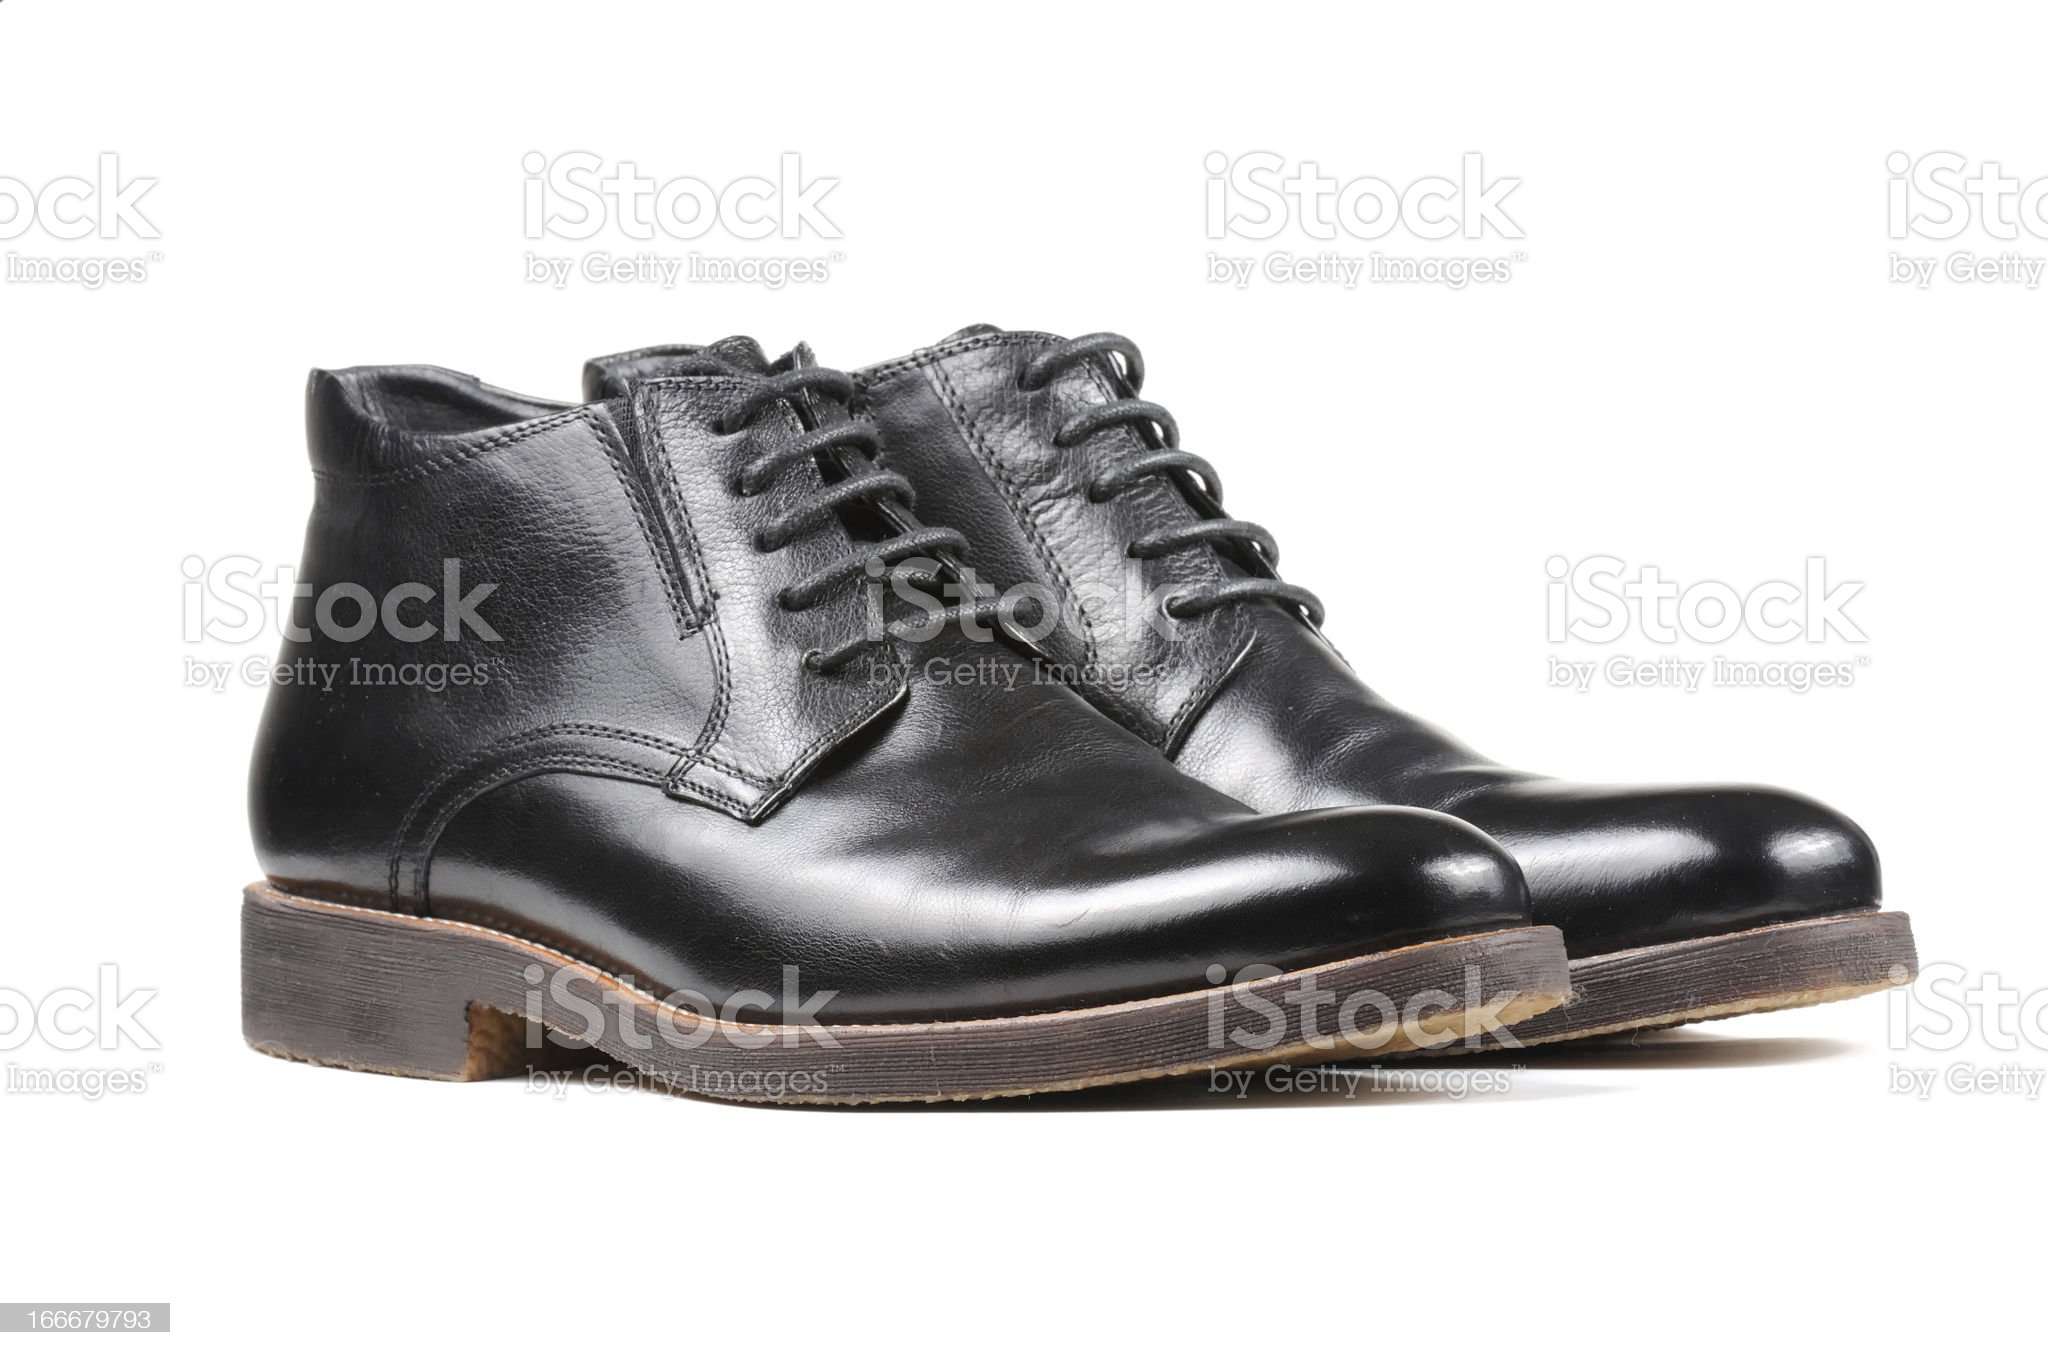 Men's Classic Black Leather Shoes Isolated on White Background royalty-free stock photo